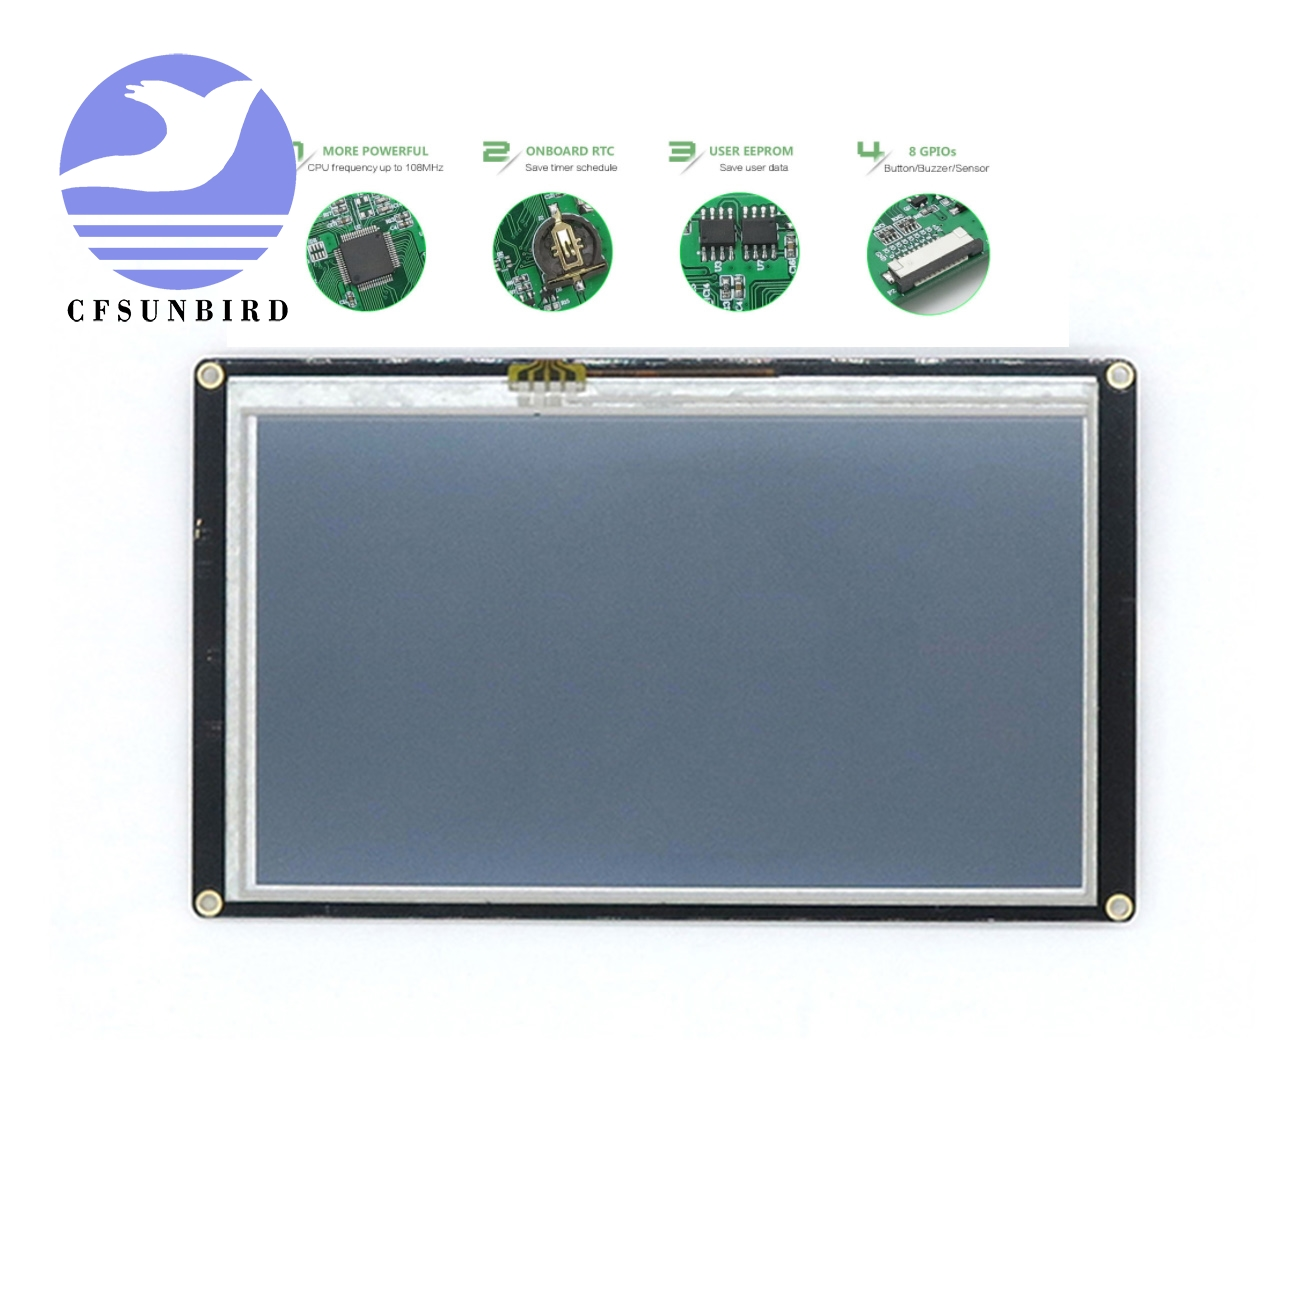 CFsunbird LCD Display Nextion Enhanced 7.0 HMI Touch TFT Display Raspberry Pi Lcd Controller Board NX8048K070-in LCD Modules from Electronic Components & Supplies